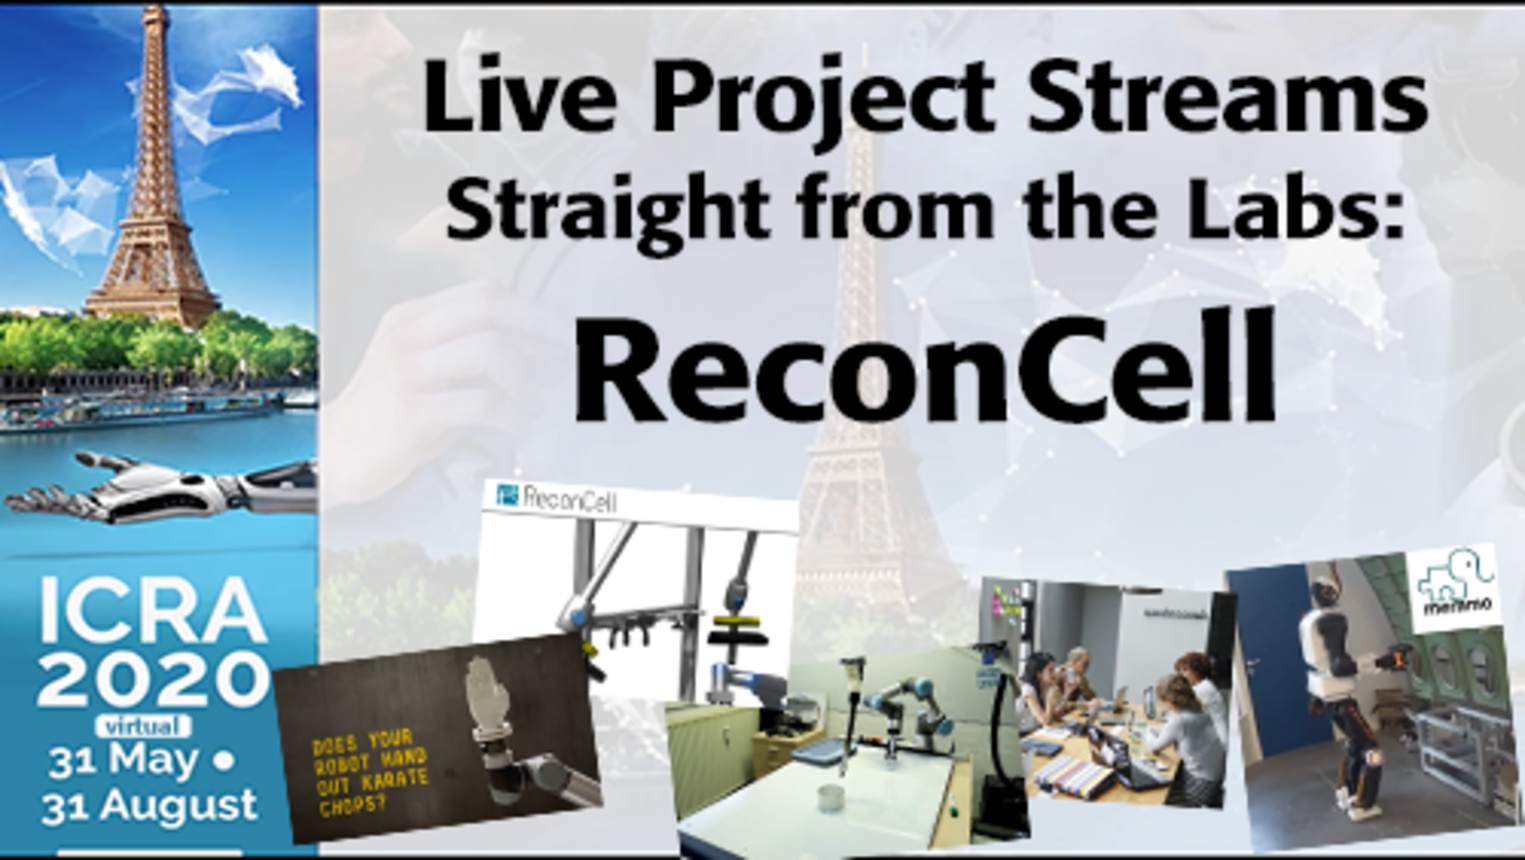 ICRA 2020-Live Project Demo: ReconCell